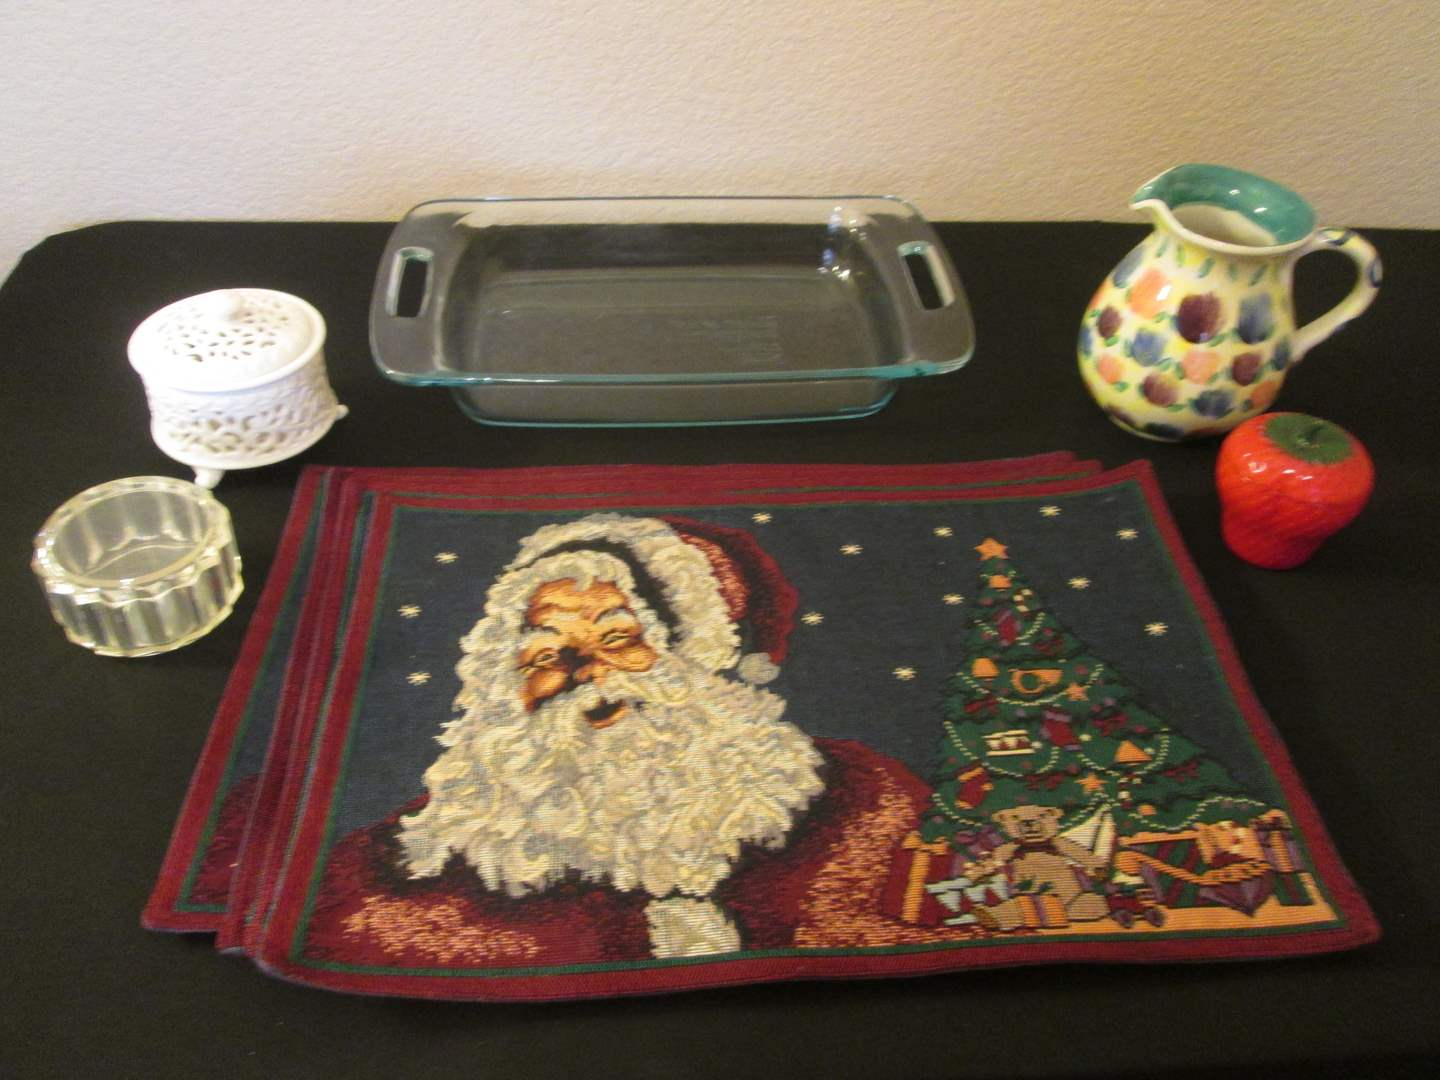 Lot # 248 - Pyrex Baking Dish, Holiday Placemats + + + (main image)